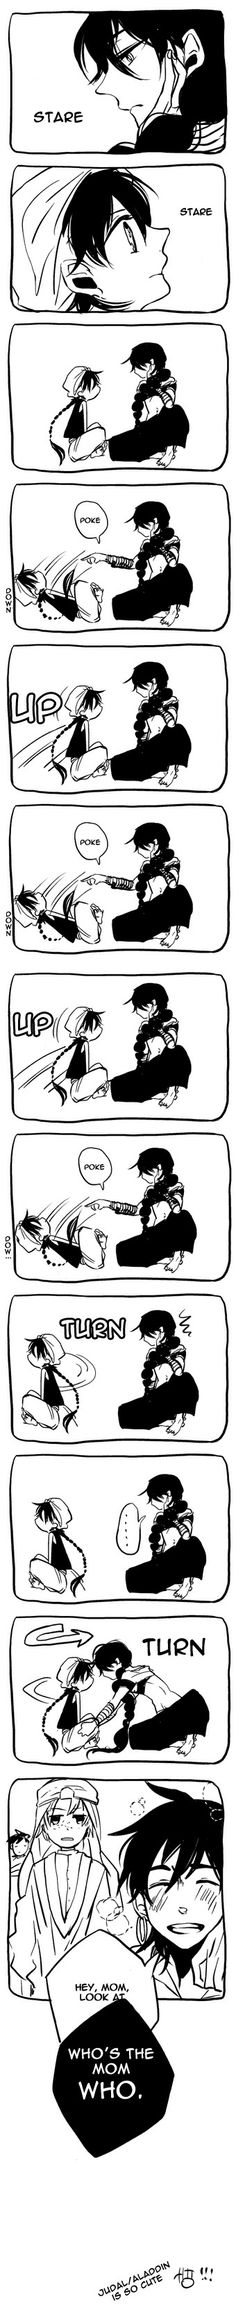 I don't ship them, but... this is adorable. Even though Judal is evil, he is still gorgeous.